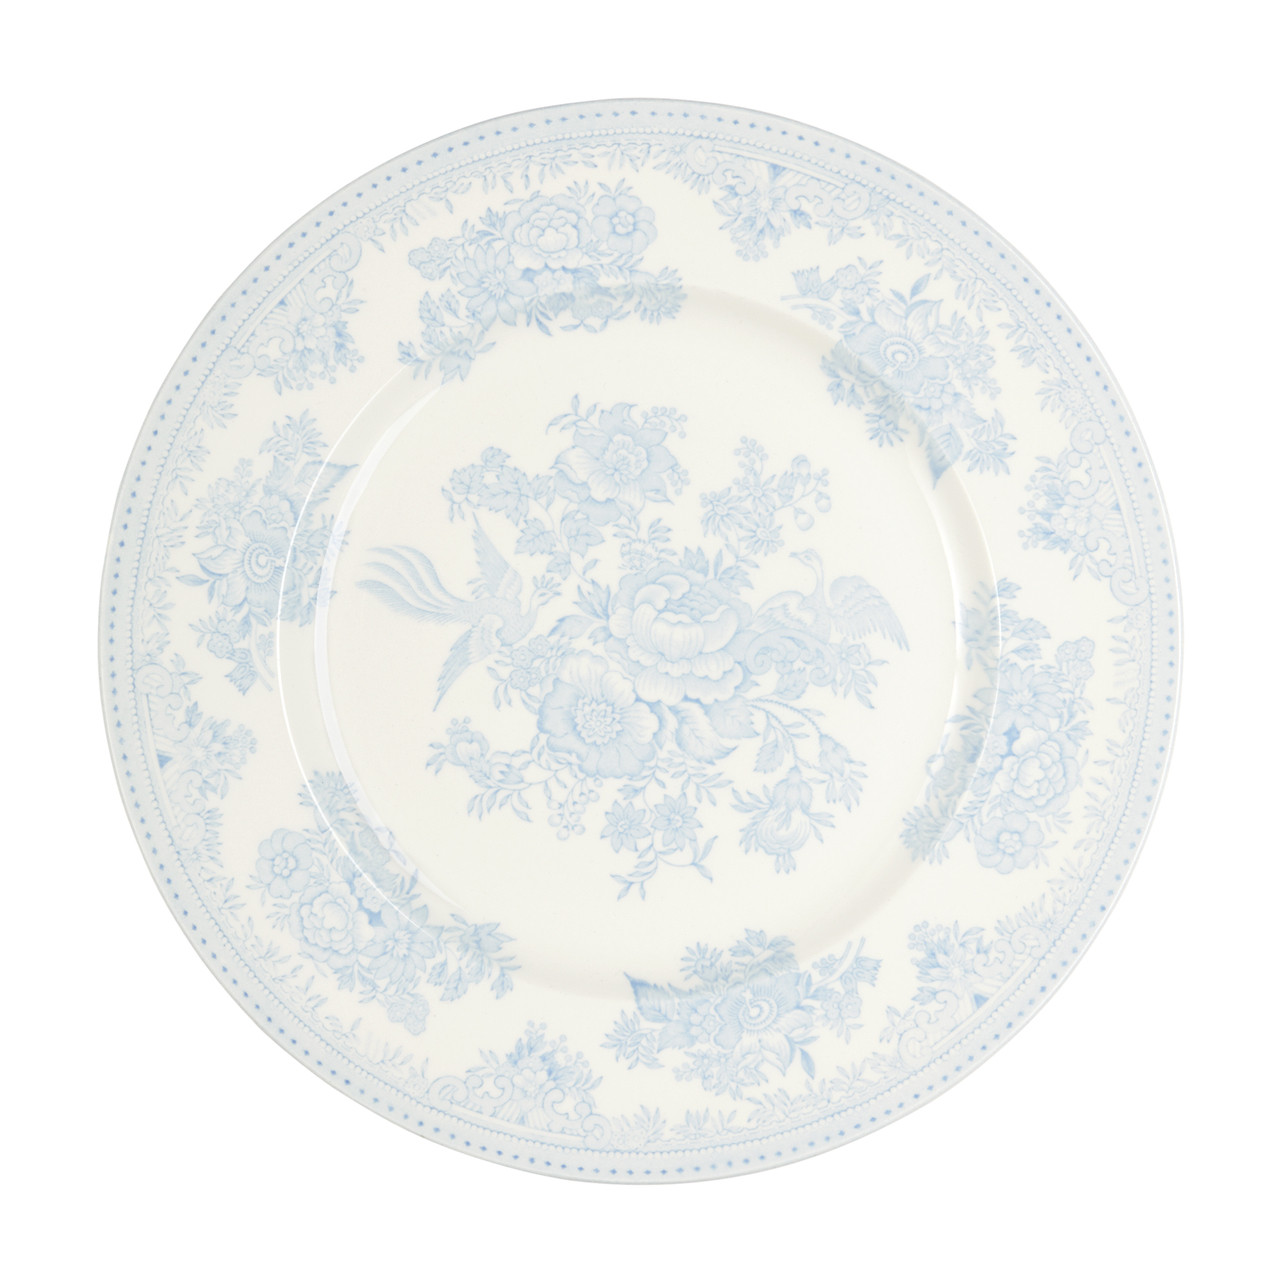 Burleigh Blue Asiatic Pheasants | Beautiful china dinnerware to adorn your tablescapes and add to your Sasha Nicholas wedding & gift registry